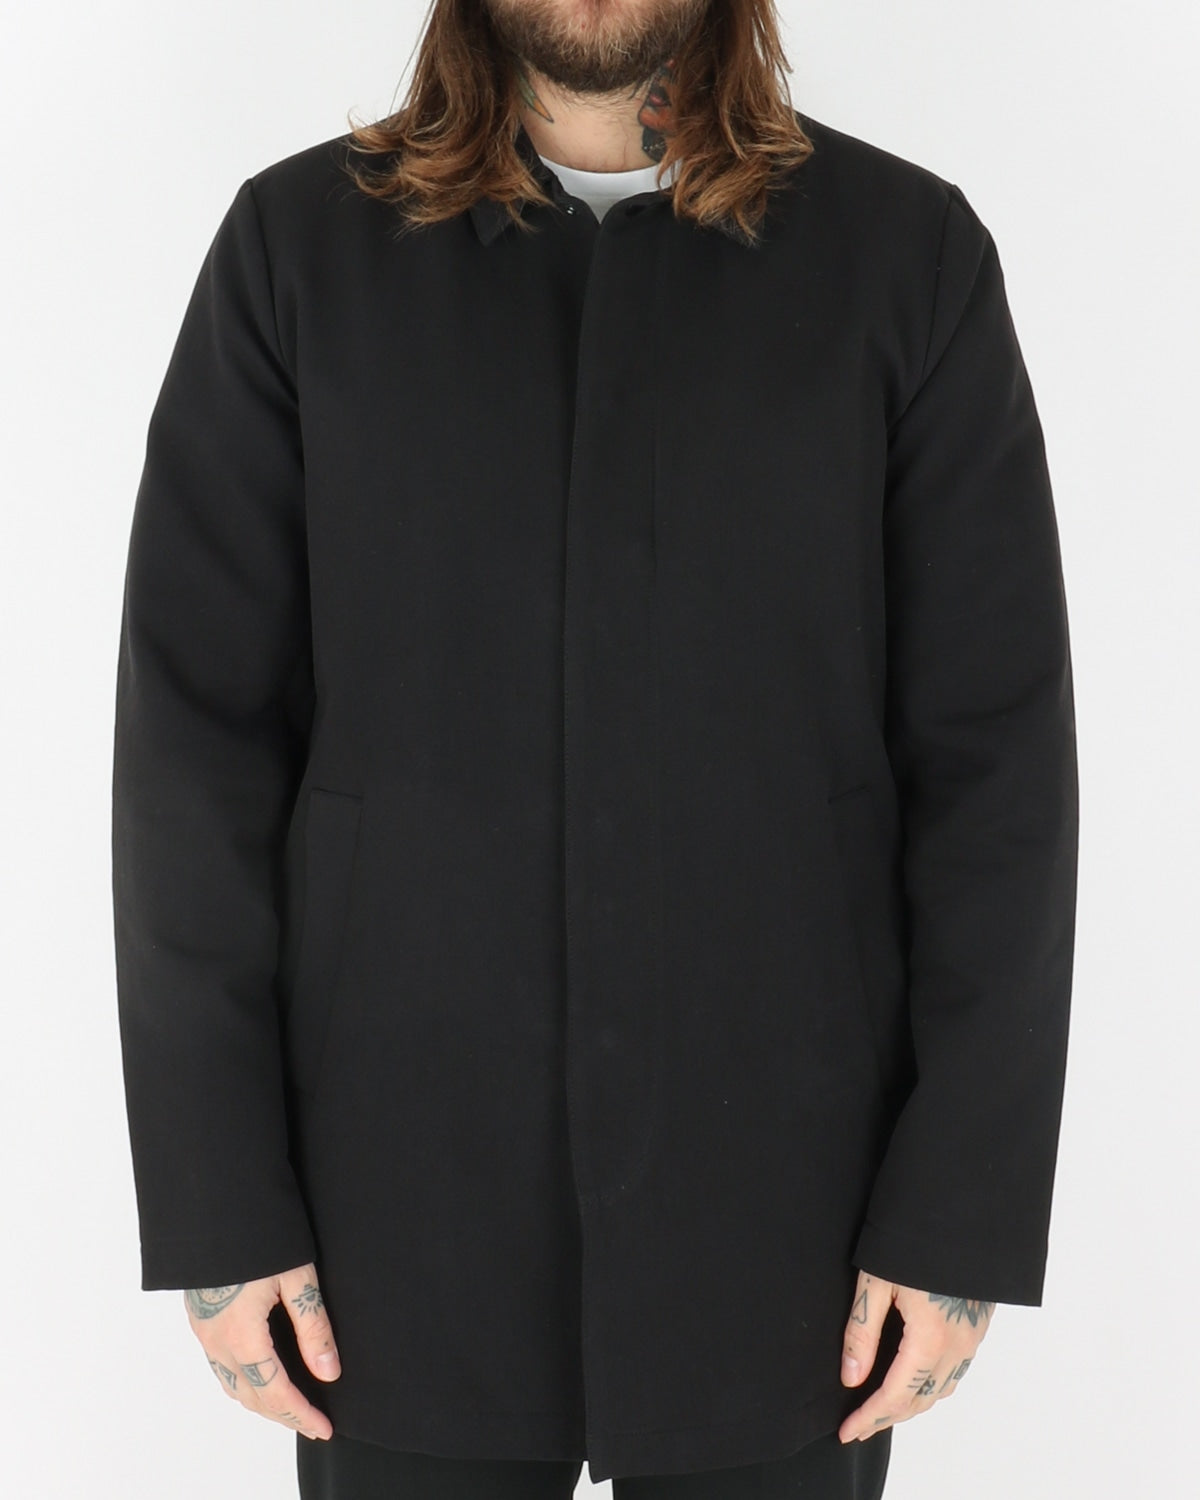 legends_spring mac coat_black_view_1_4